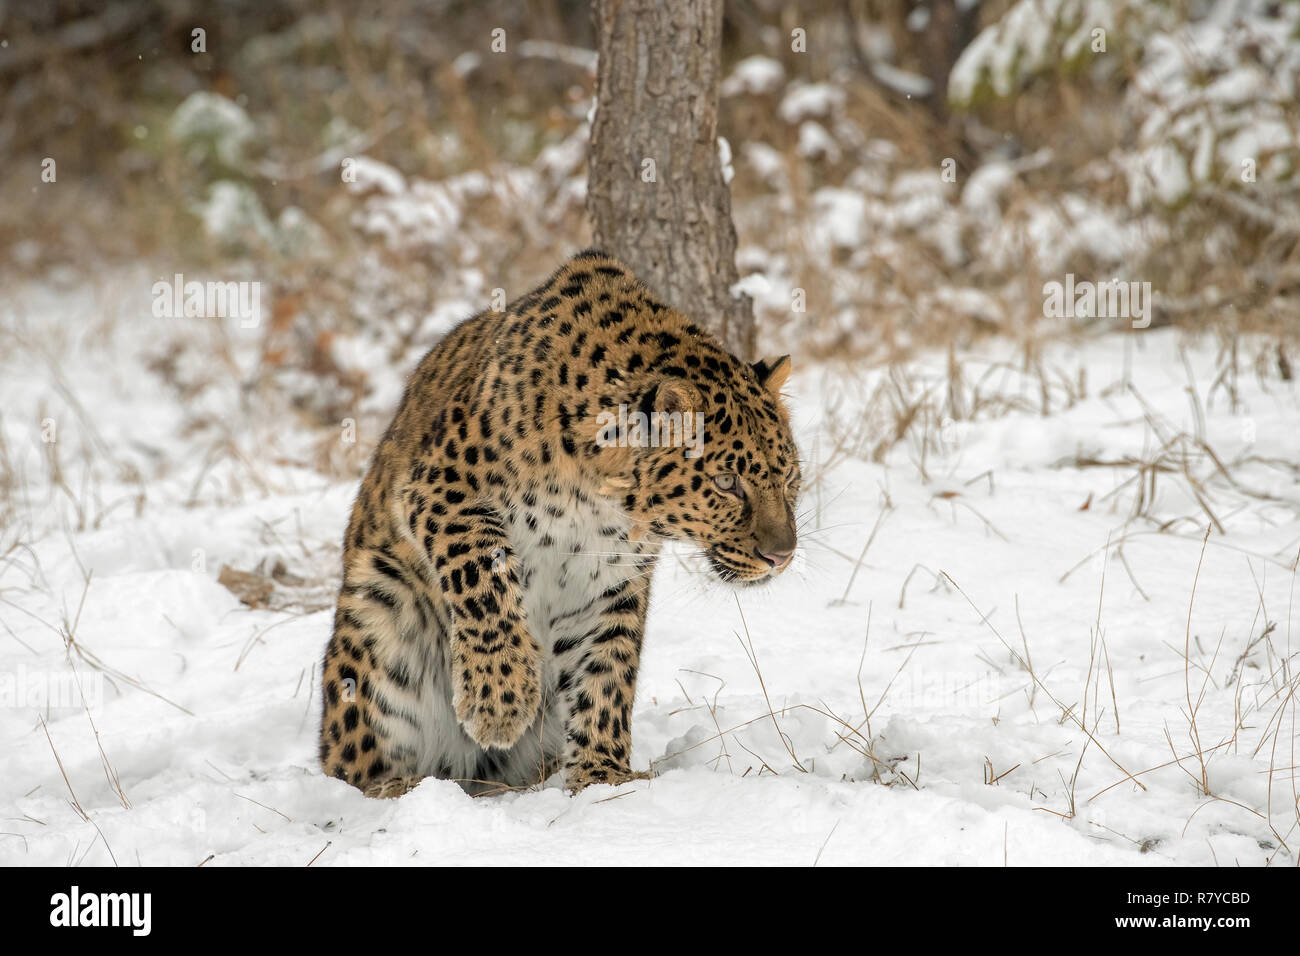 Amur Leopard lifting his Paw from the Snow - Stock Image